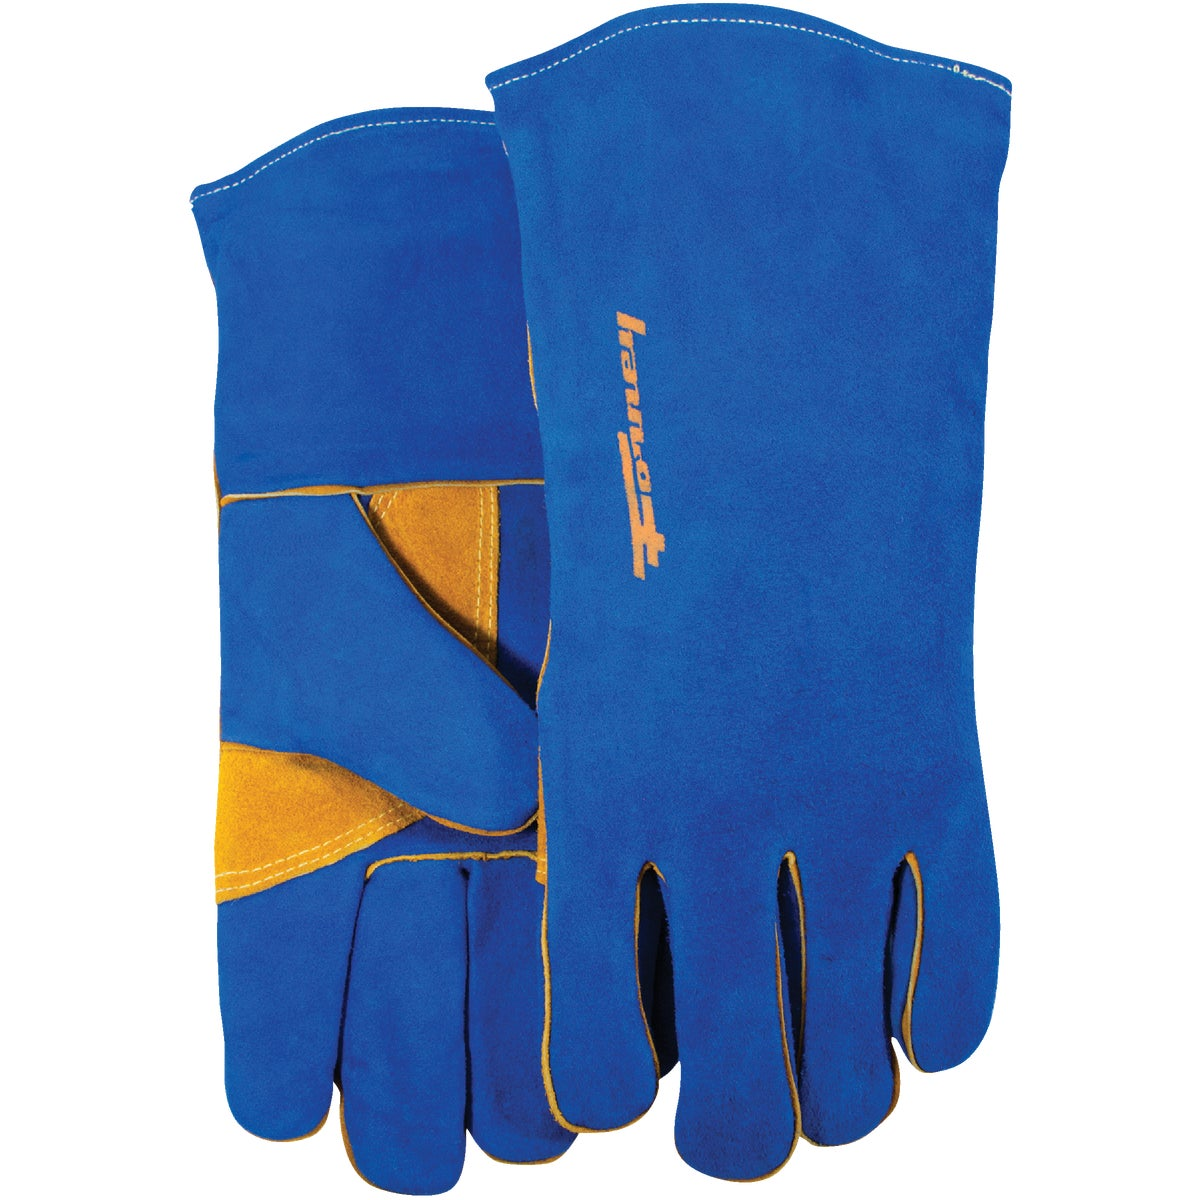 LRG HD WELDING GLOVES - 53422 by Forney Industries